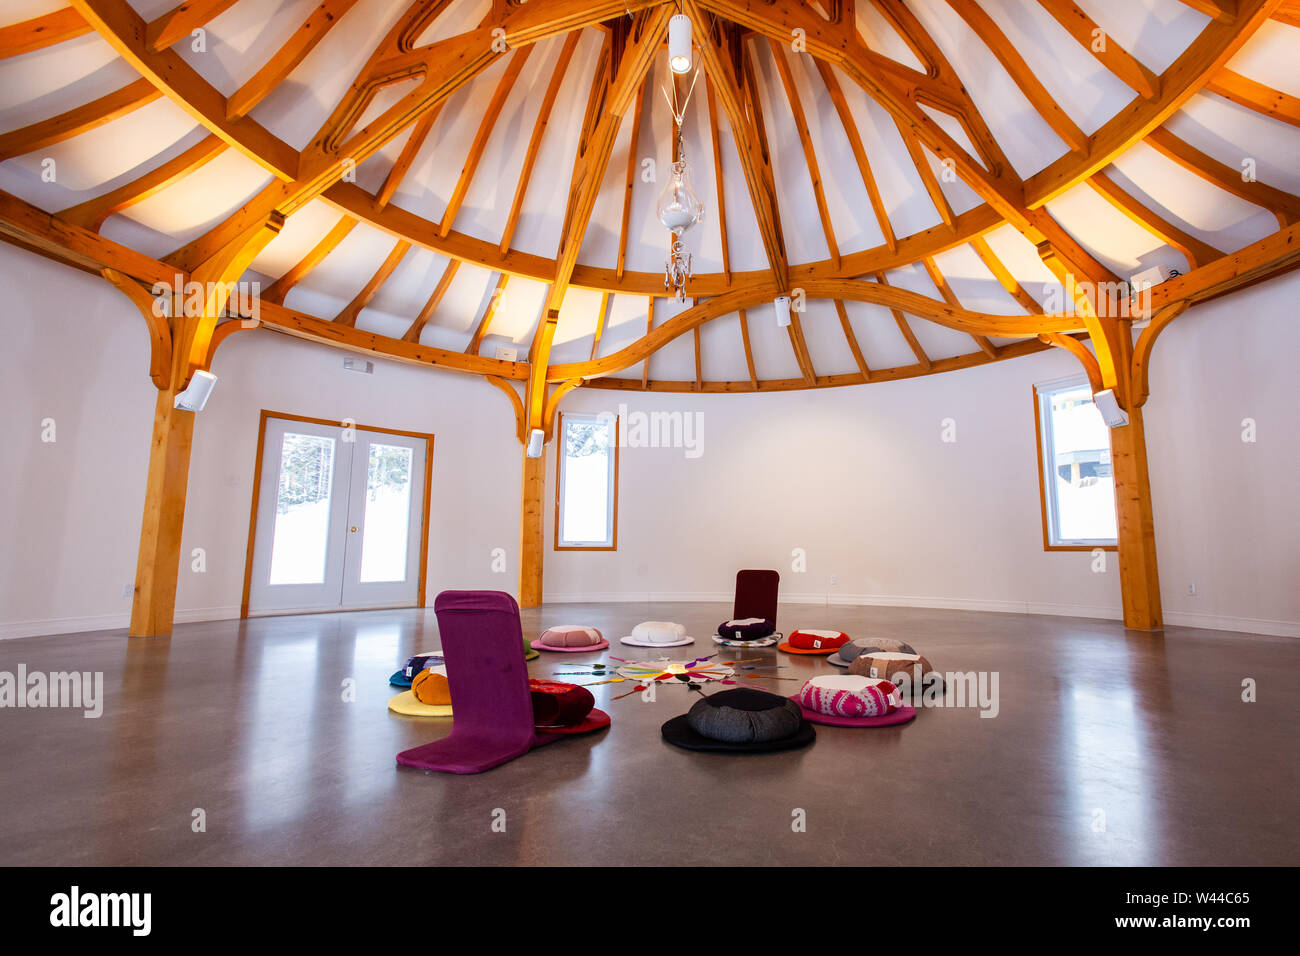 Image of: A Wide Angled View Inside A Light And Airy Meditation Room With Exposed Rustic Beams In A Vaulted Ceiling Chairs And Cushions Are Prepared In A Circle Stock Photo Alamy